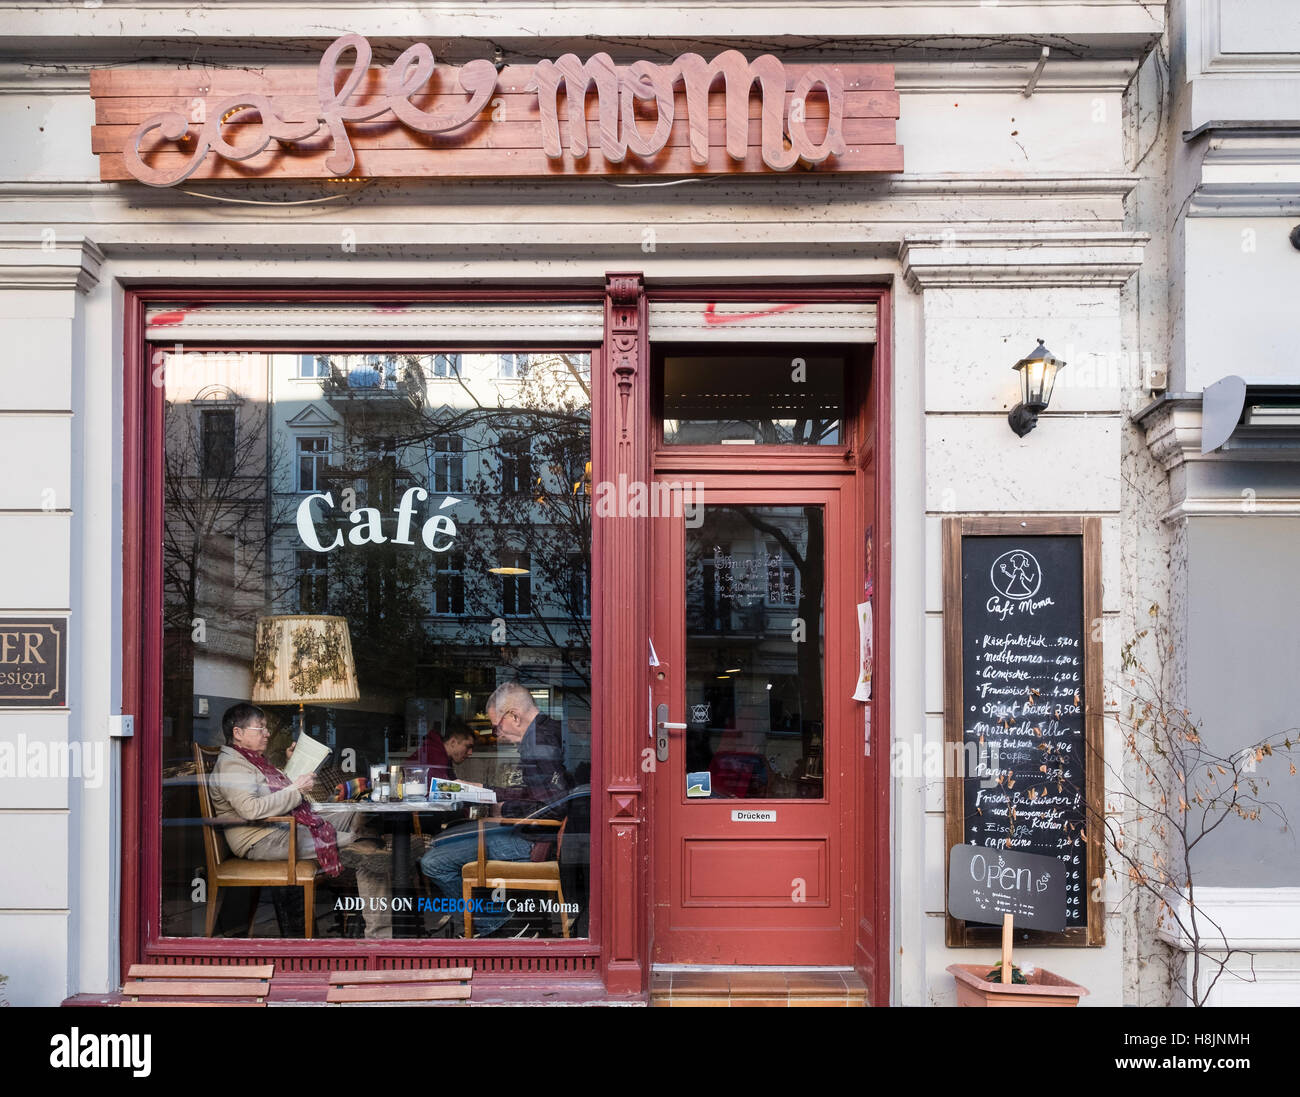 Small bohemian cafe in Prenzlauer Berg district of Berlin Germany - Stock Image